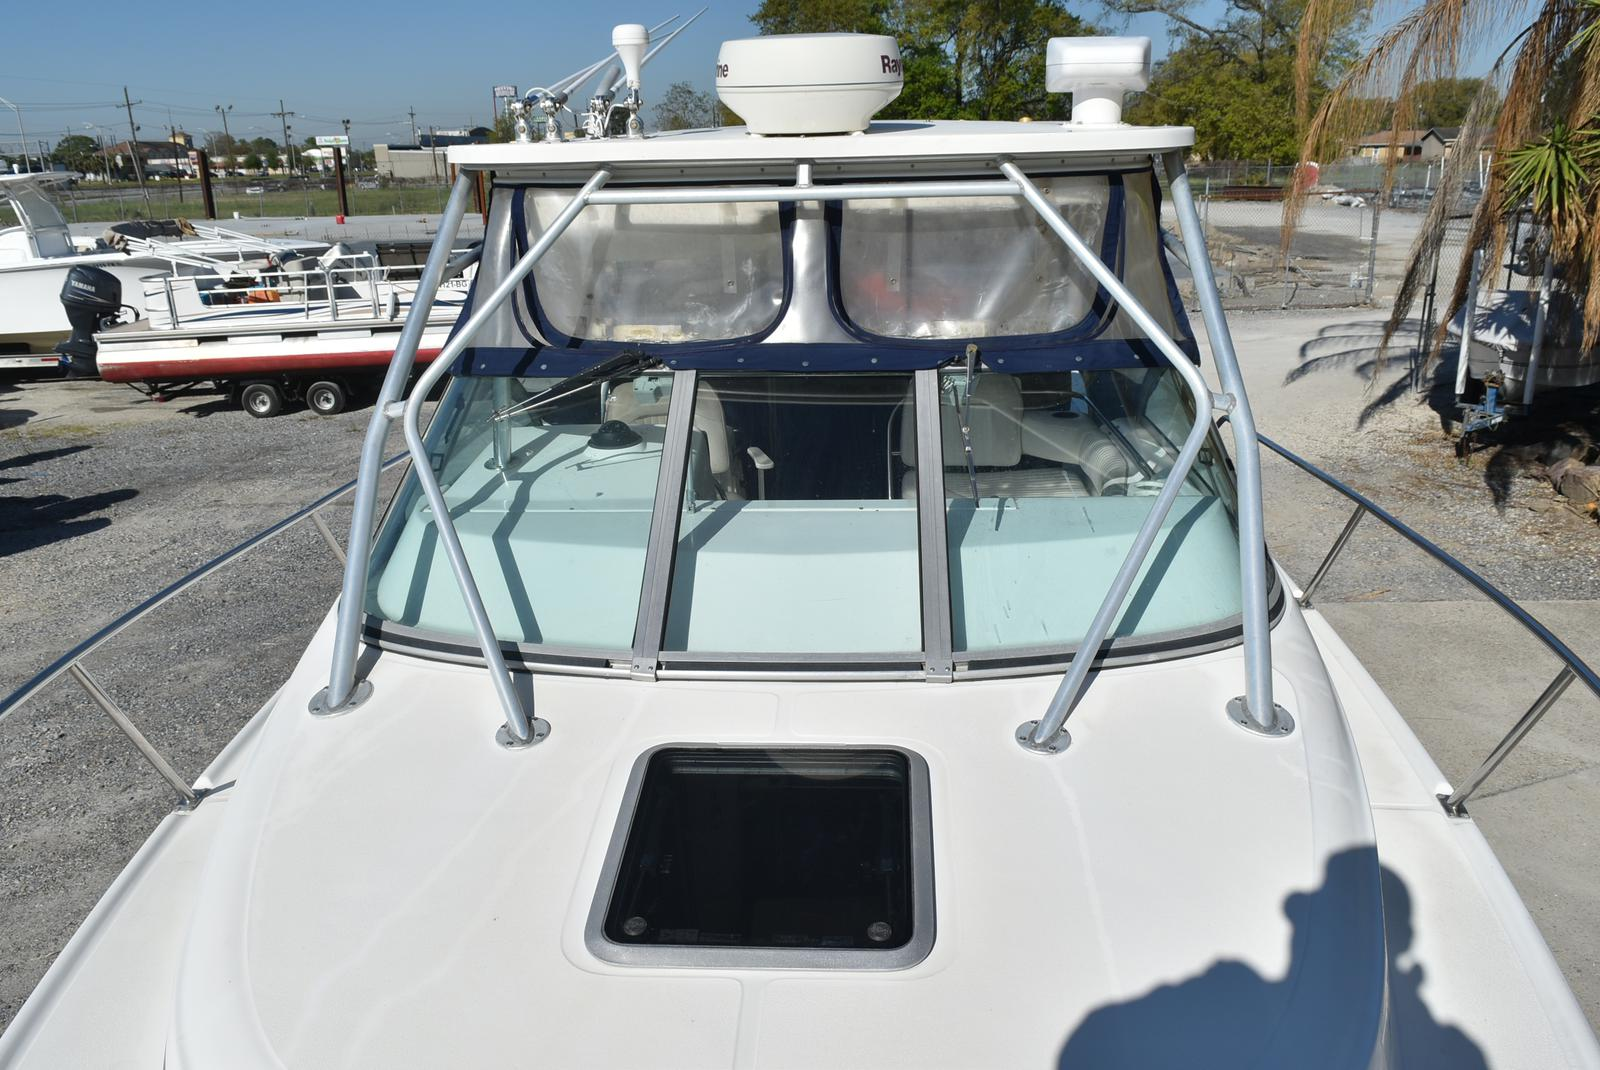 1999 Boston Whaler boat for sale, model of the boat is 285 Conquest & Image # 20 of 50